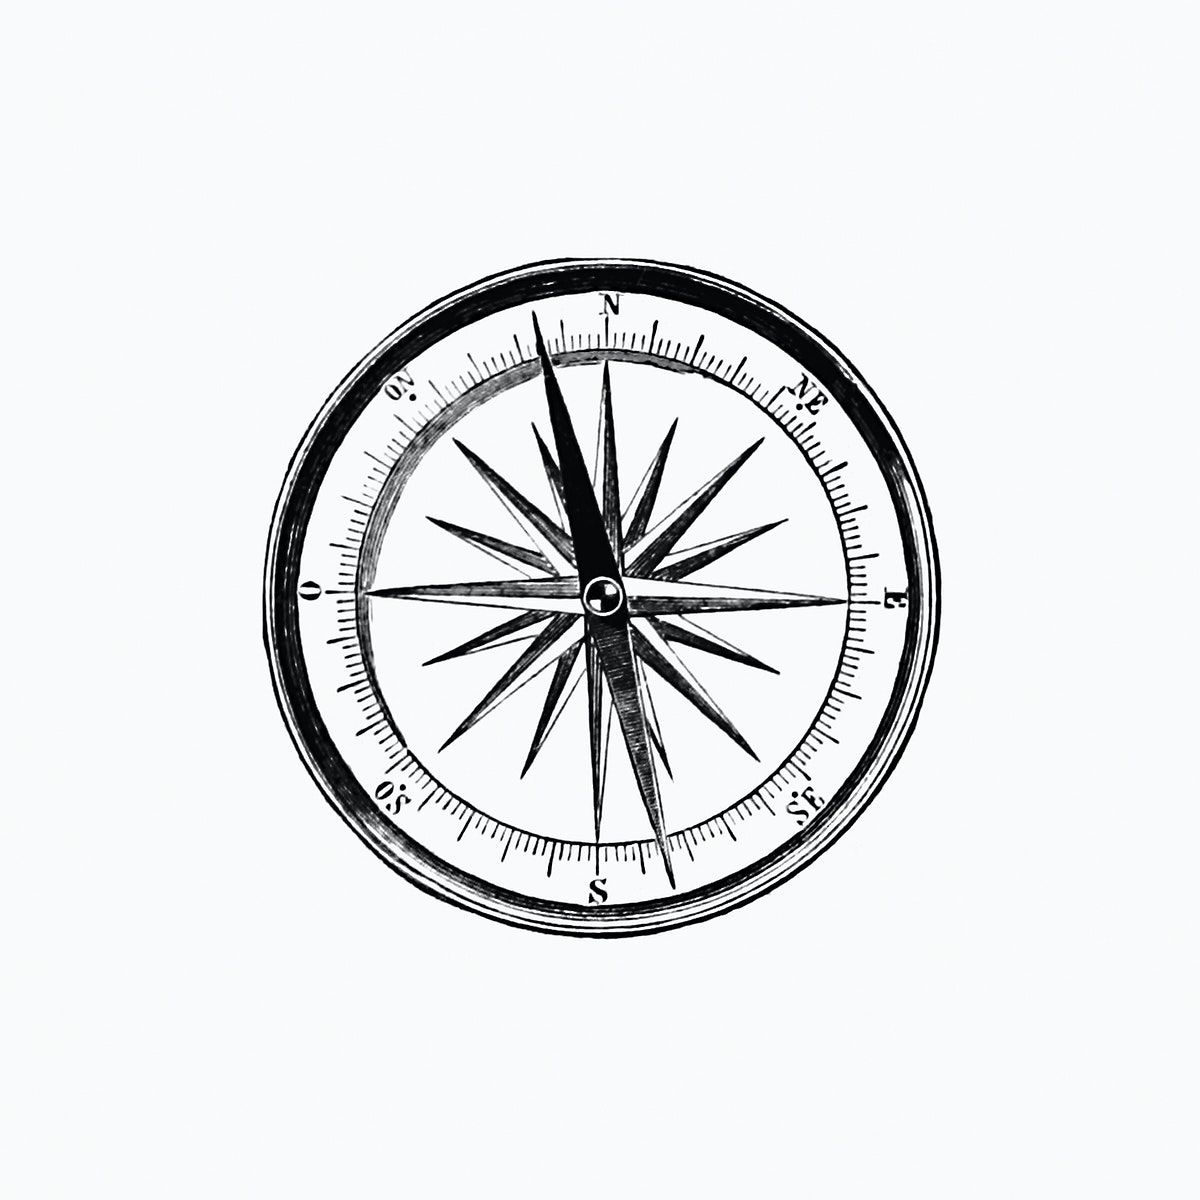 Vintage Victorian Style Compass Engraving Original From The British Library Digitally Enhanced By Rawpixel In 2020 Vintage Compass Vintage Illustration Compass Icon